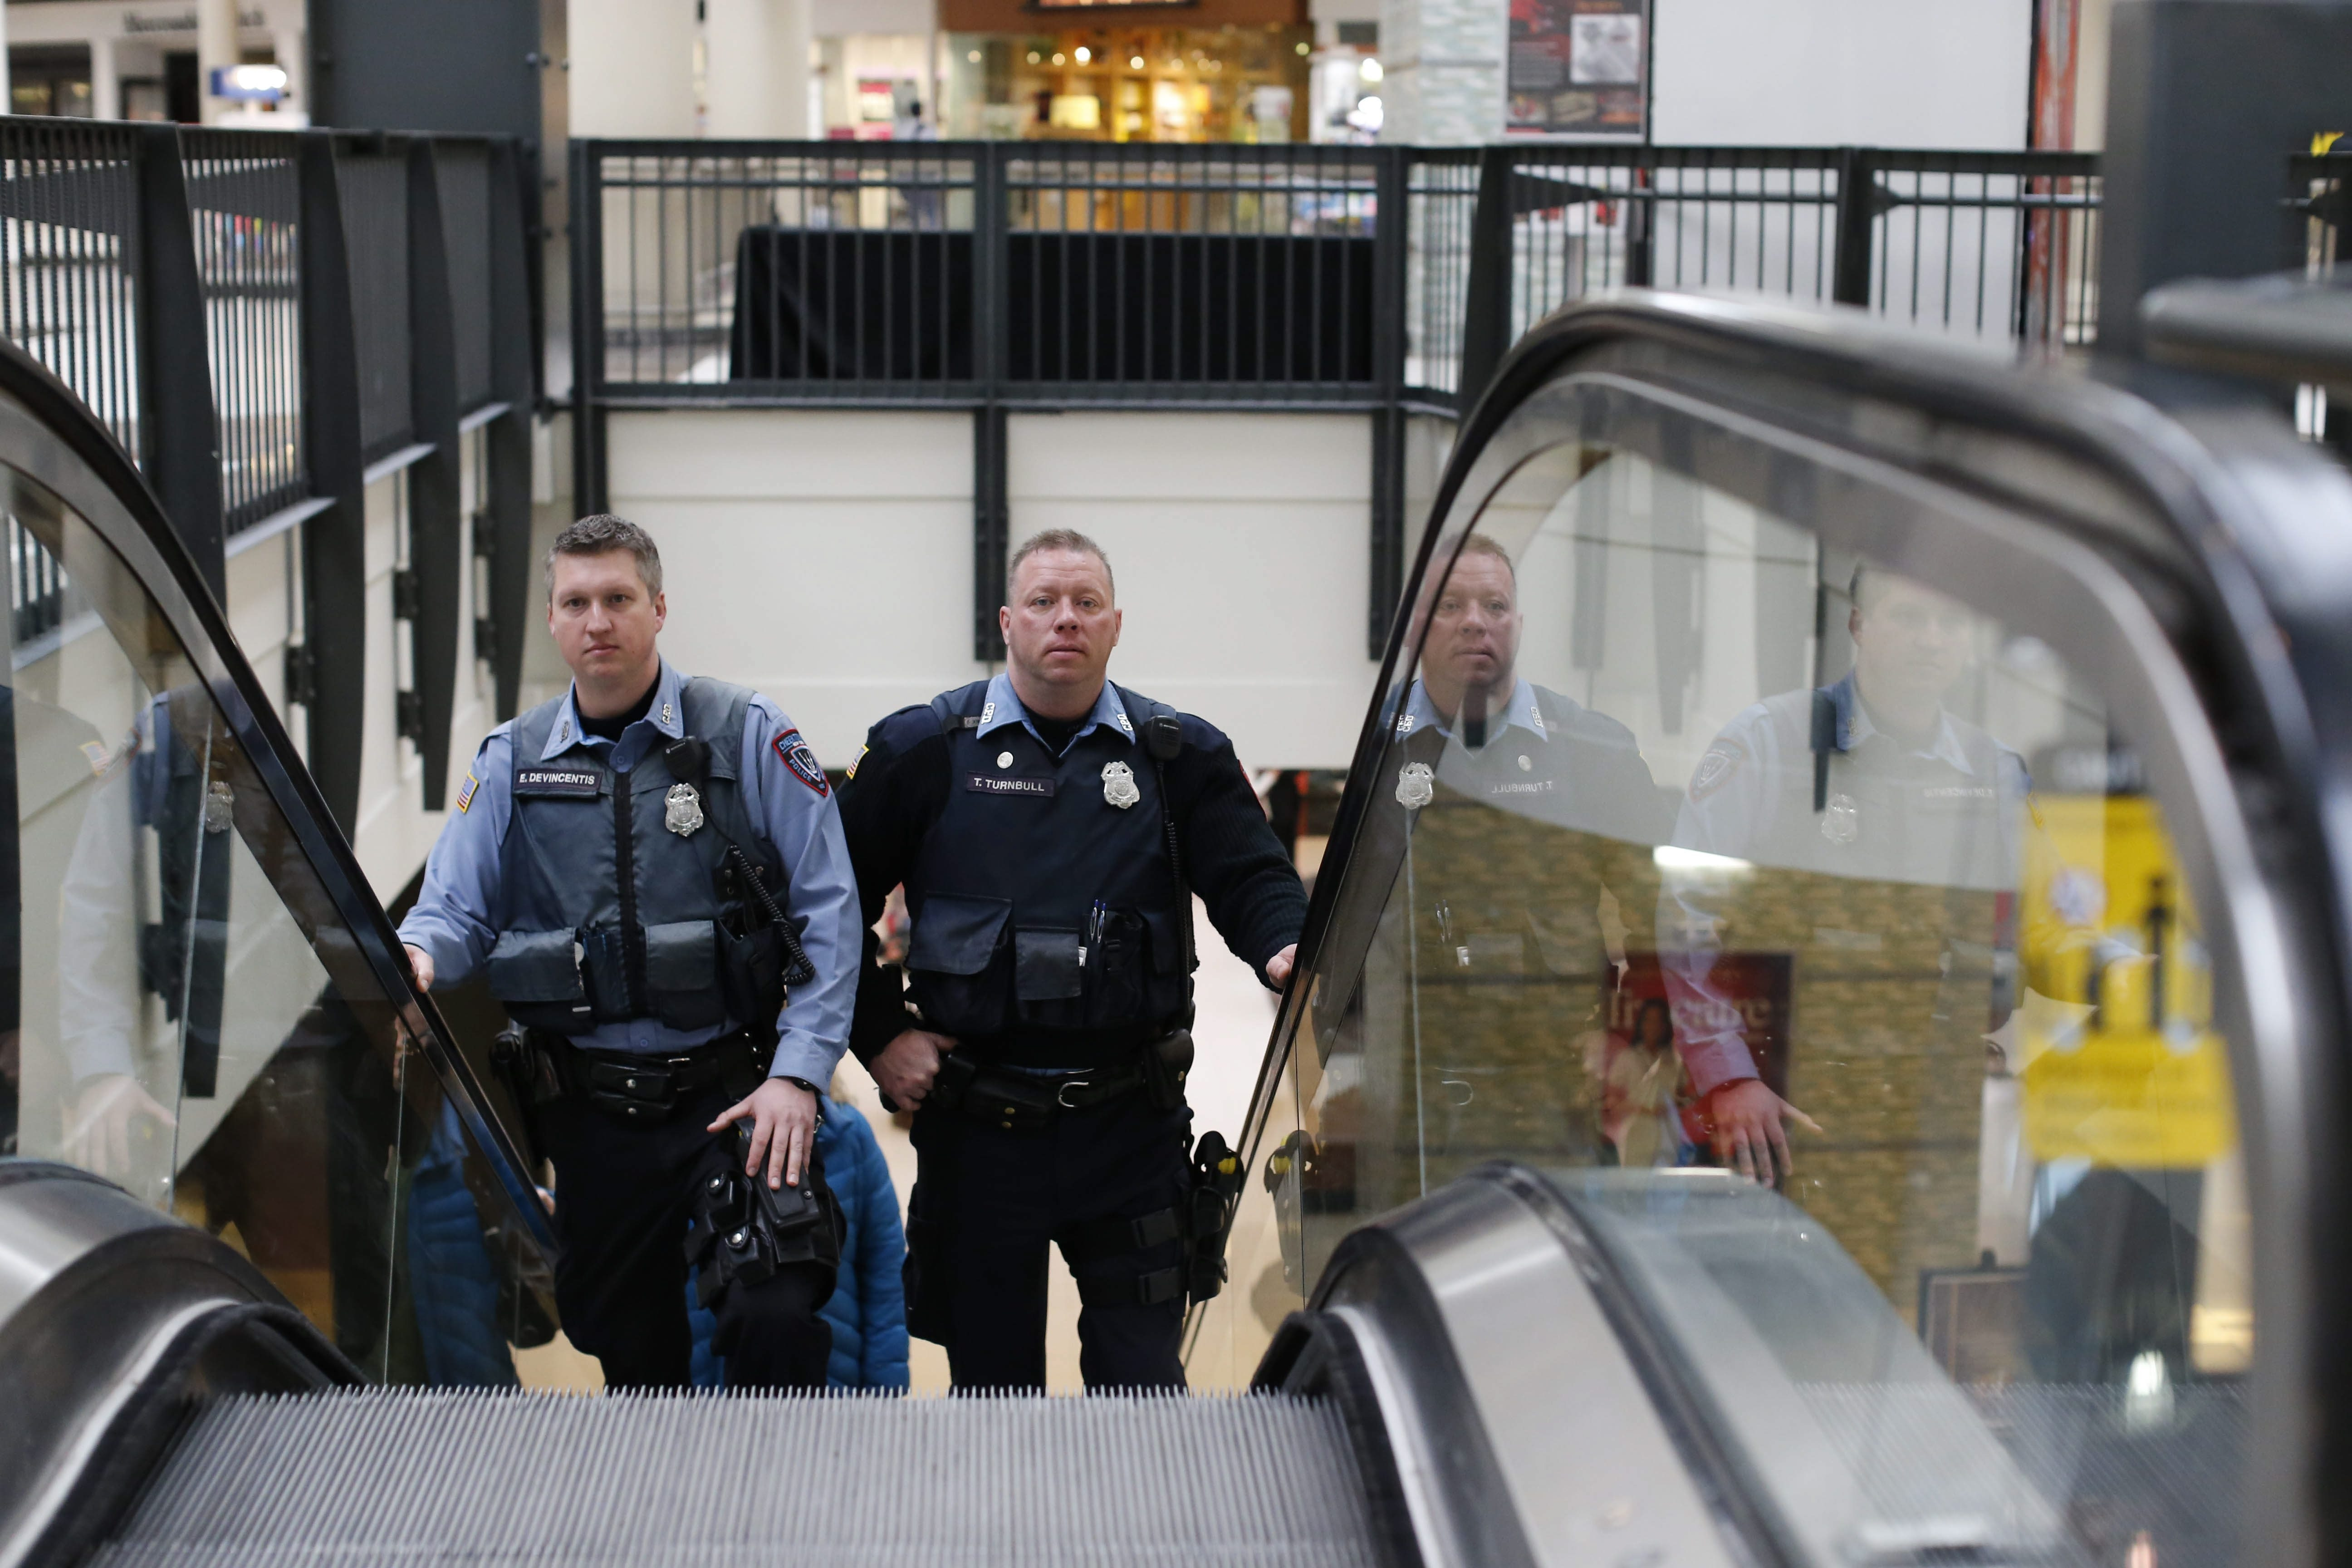 Cheektowaga Police Officers Emil F. DeVincentis, left, and Timothy A. Turnbull patrol inside the Walden Galleria mall in the town Friday. The town Police Department has briefed all of its officers on the terrorist video that urges extremists to target U.S. malls.